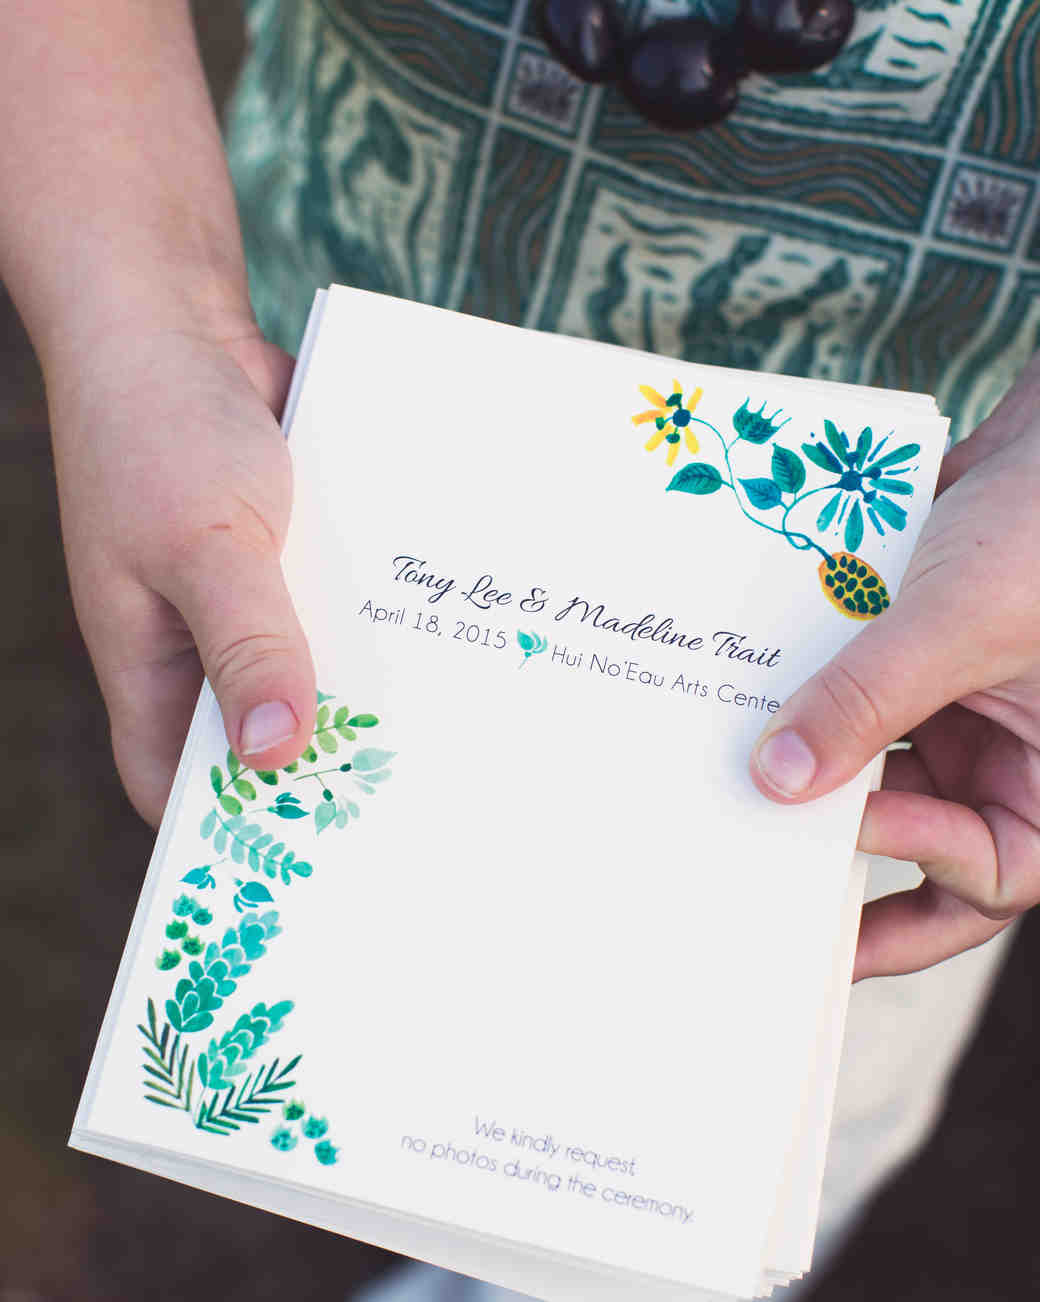 maddie-tony-wedding-programs-9309-s112424-1015.jpg